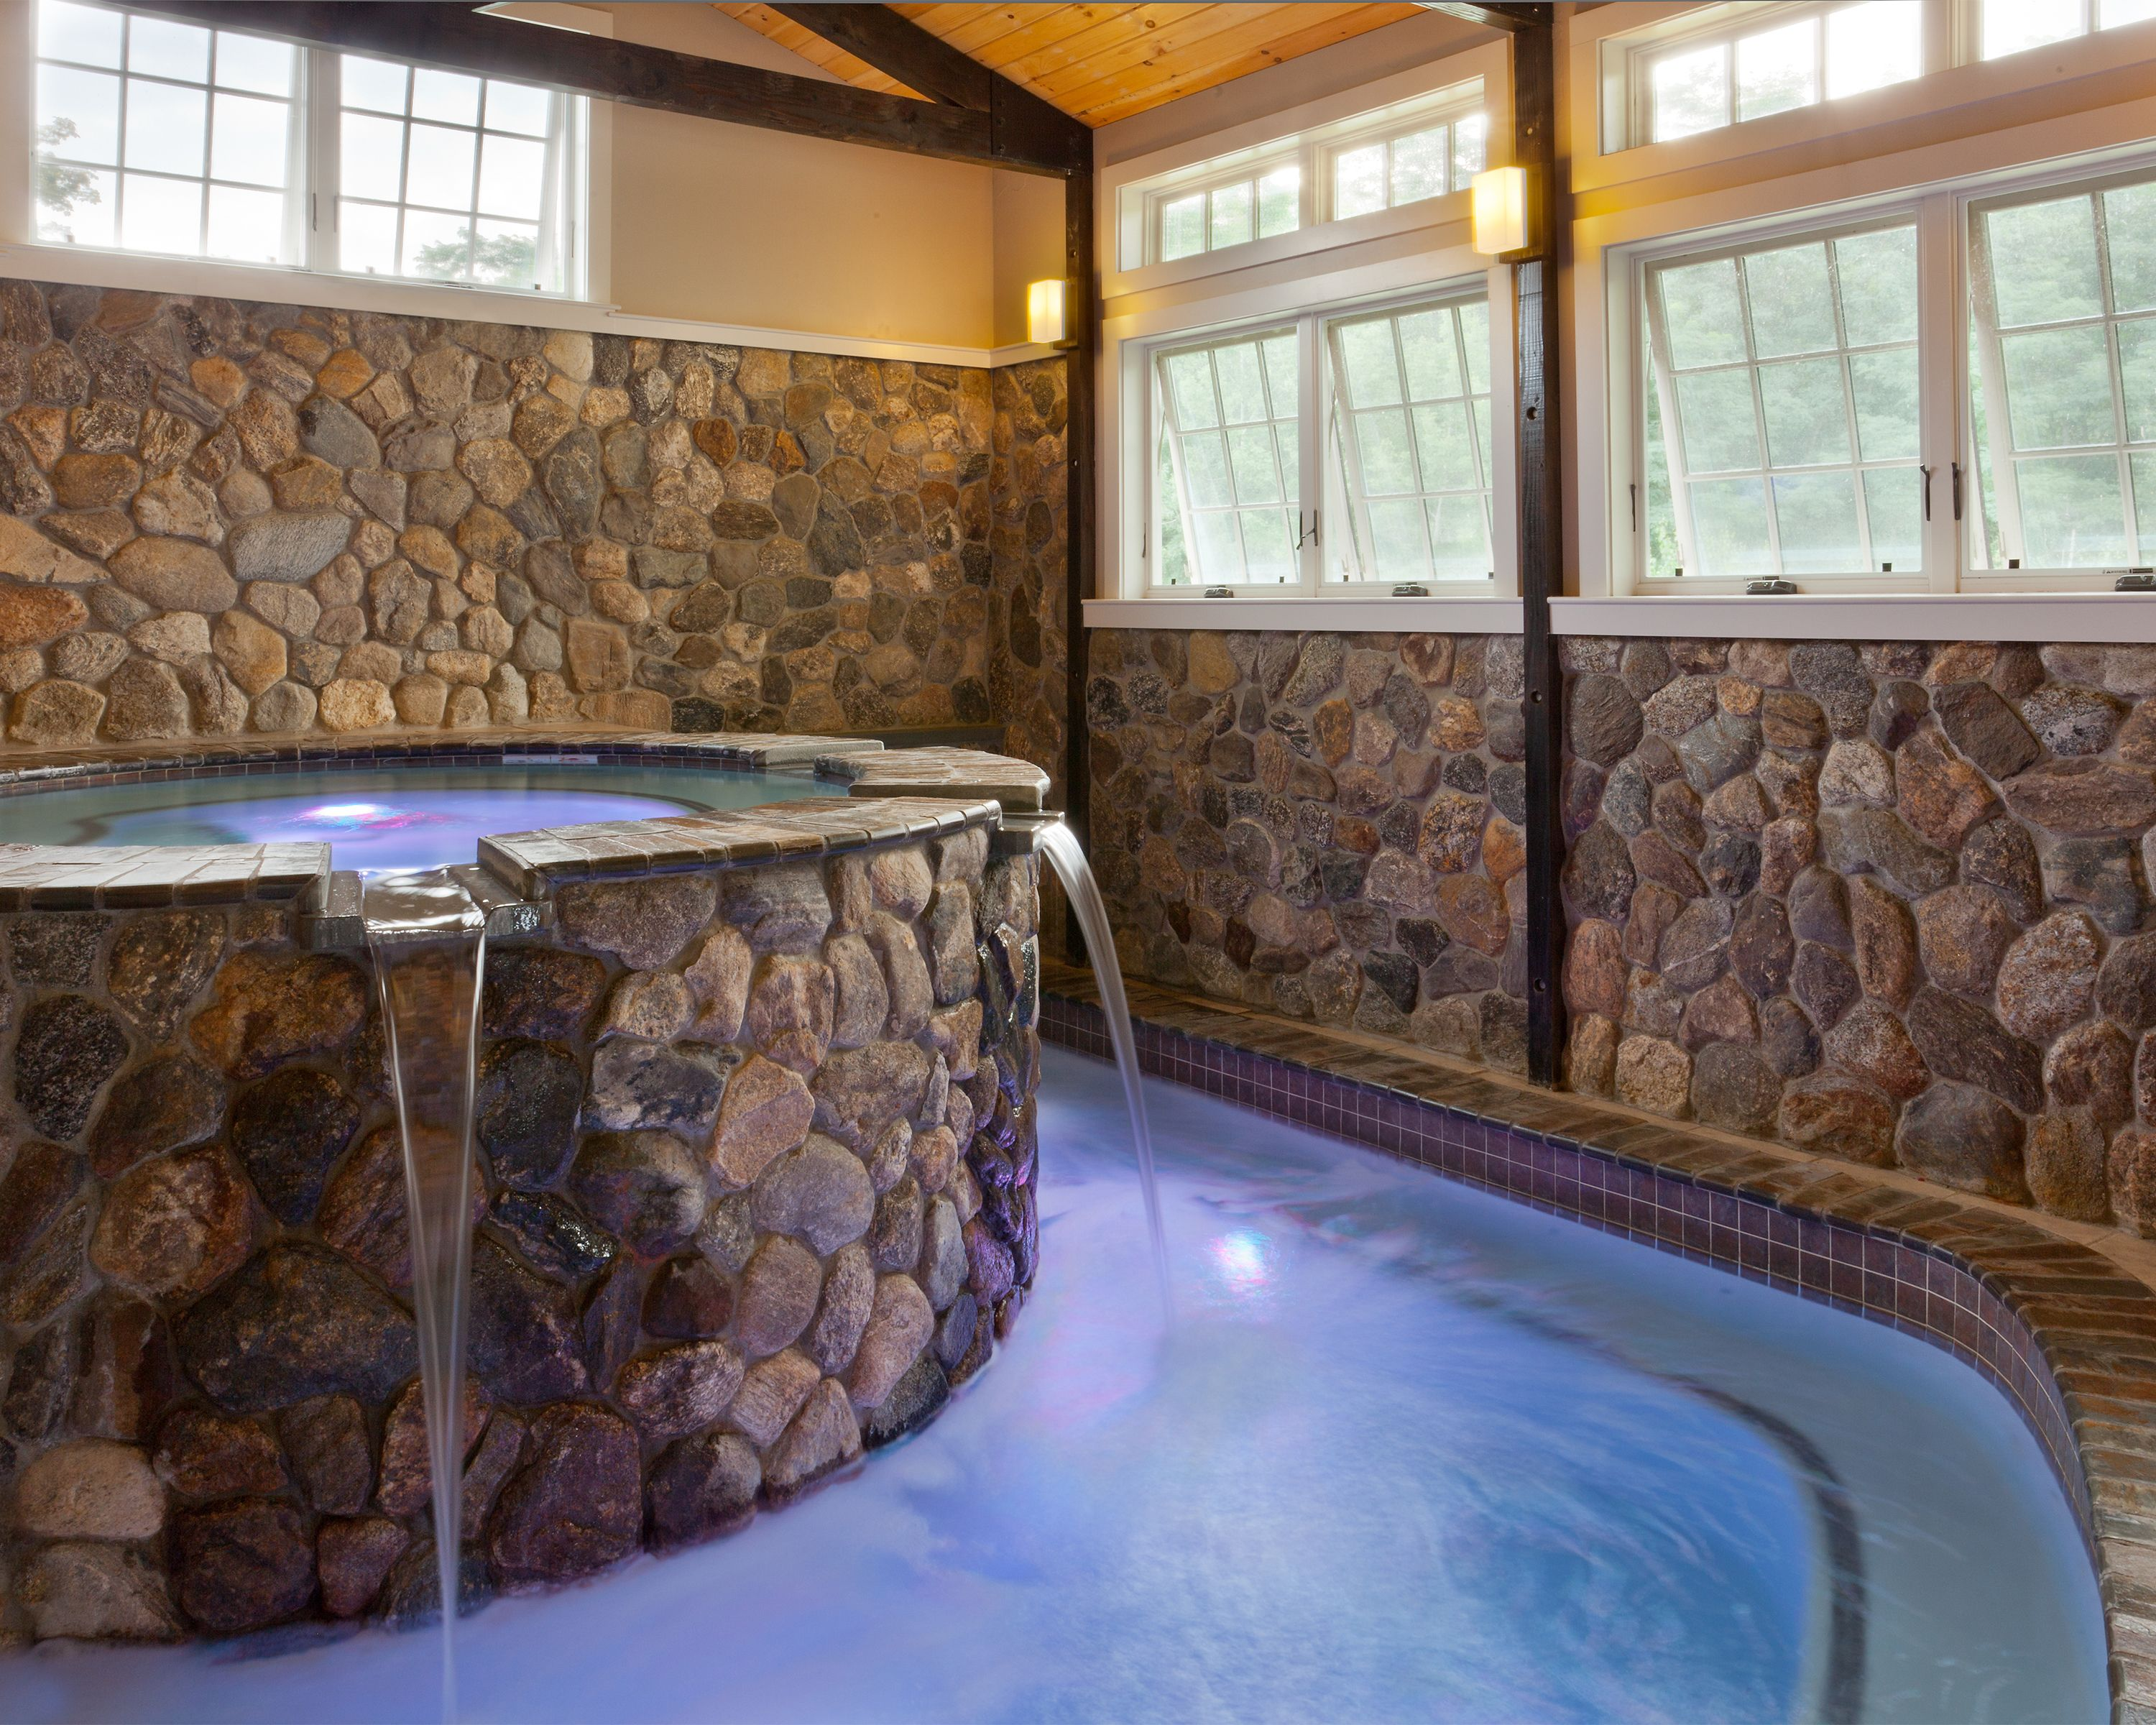 Enjoy A Soothing Experience In The Indoor Hot Tub During Your Honeymoon At Bluegreen Vacations South Mountain Dream Honeymoon Bluegreen Vacations Honeymoon Hot